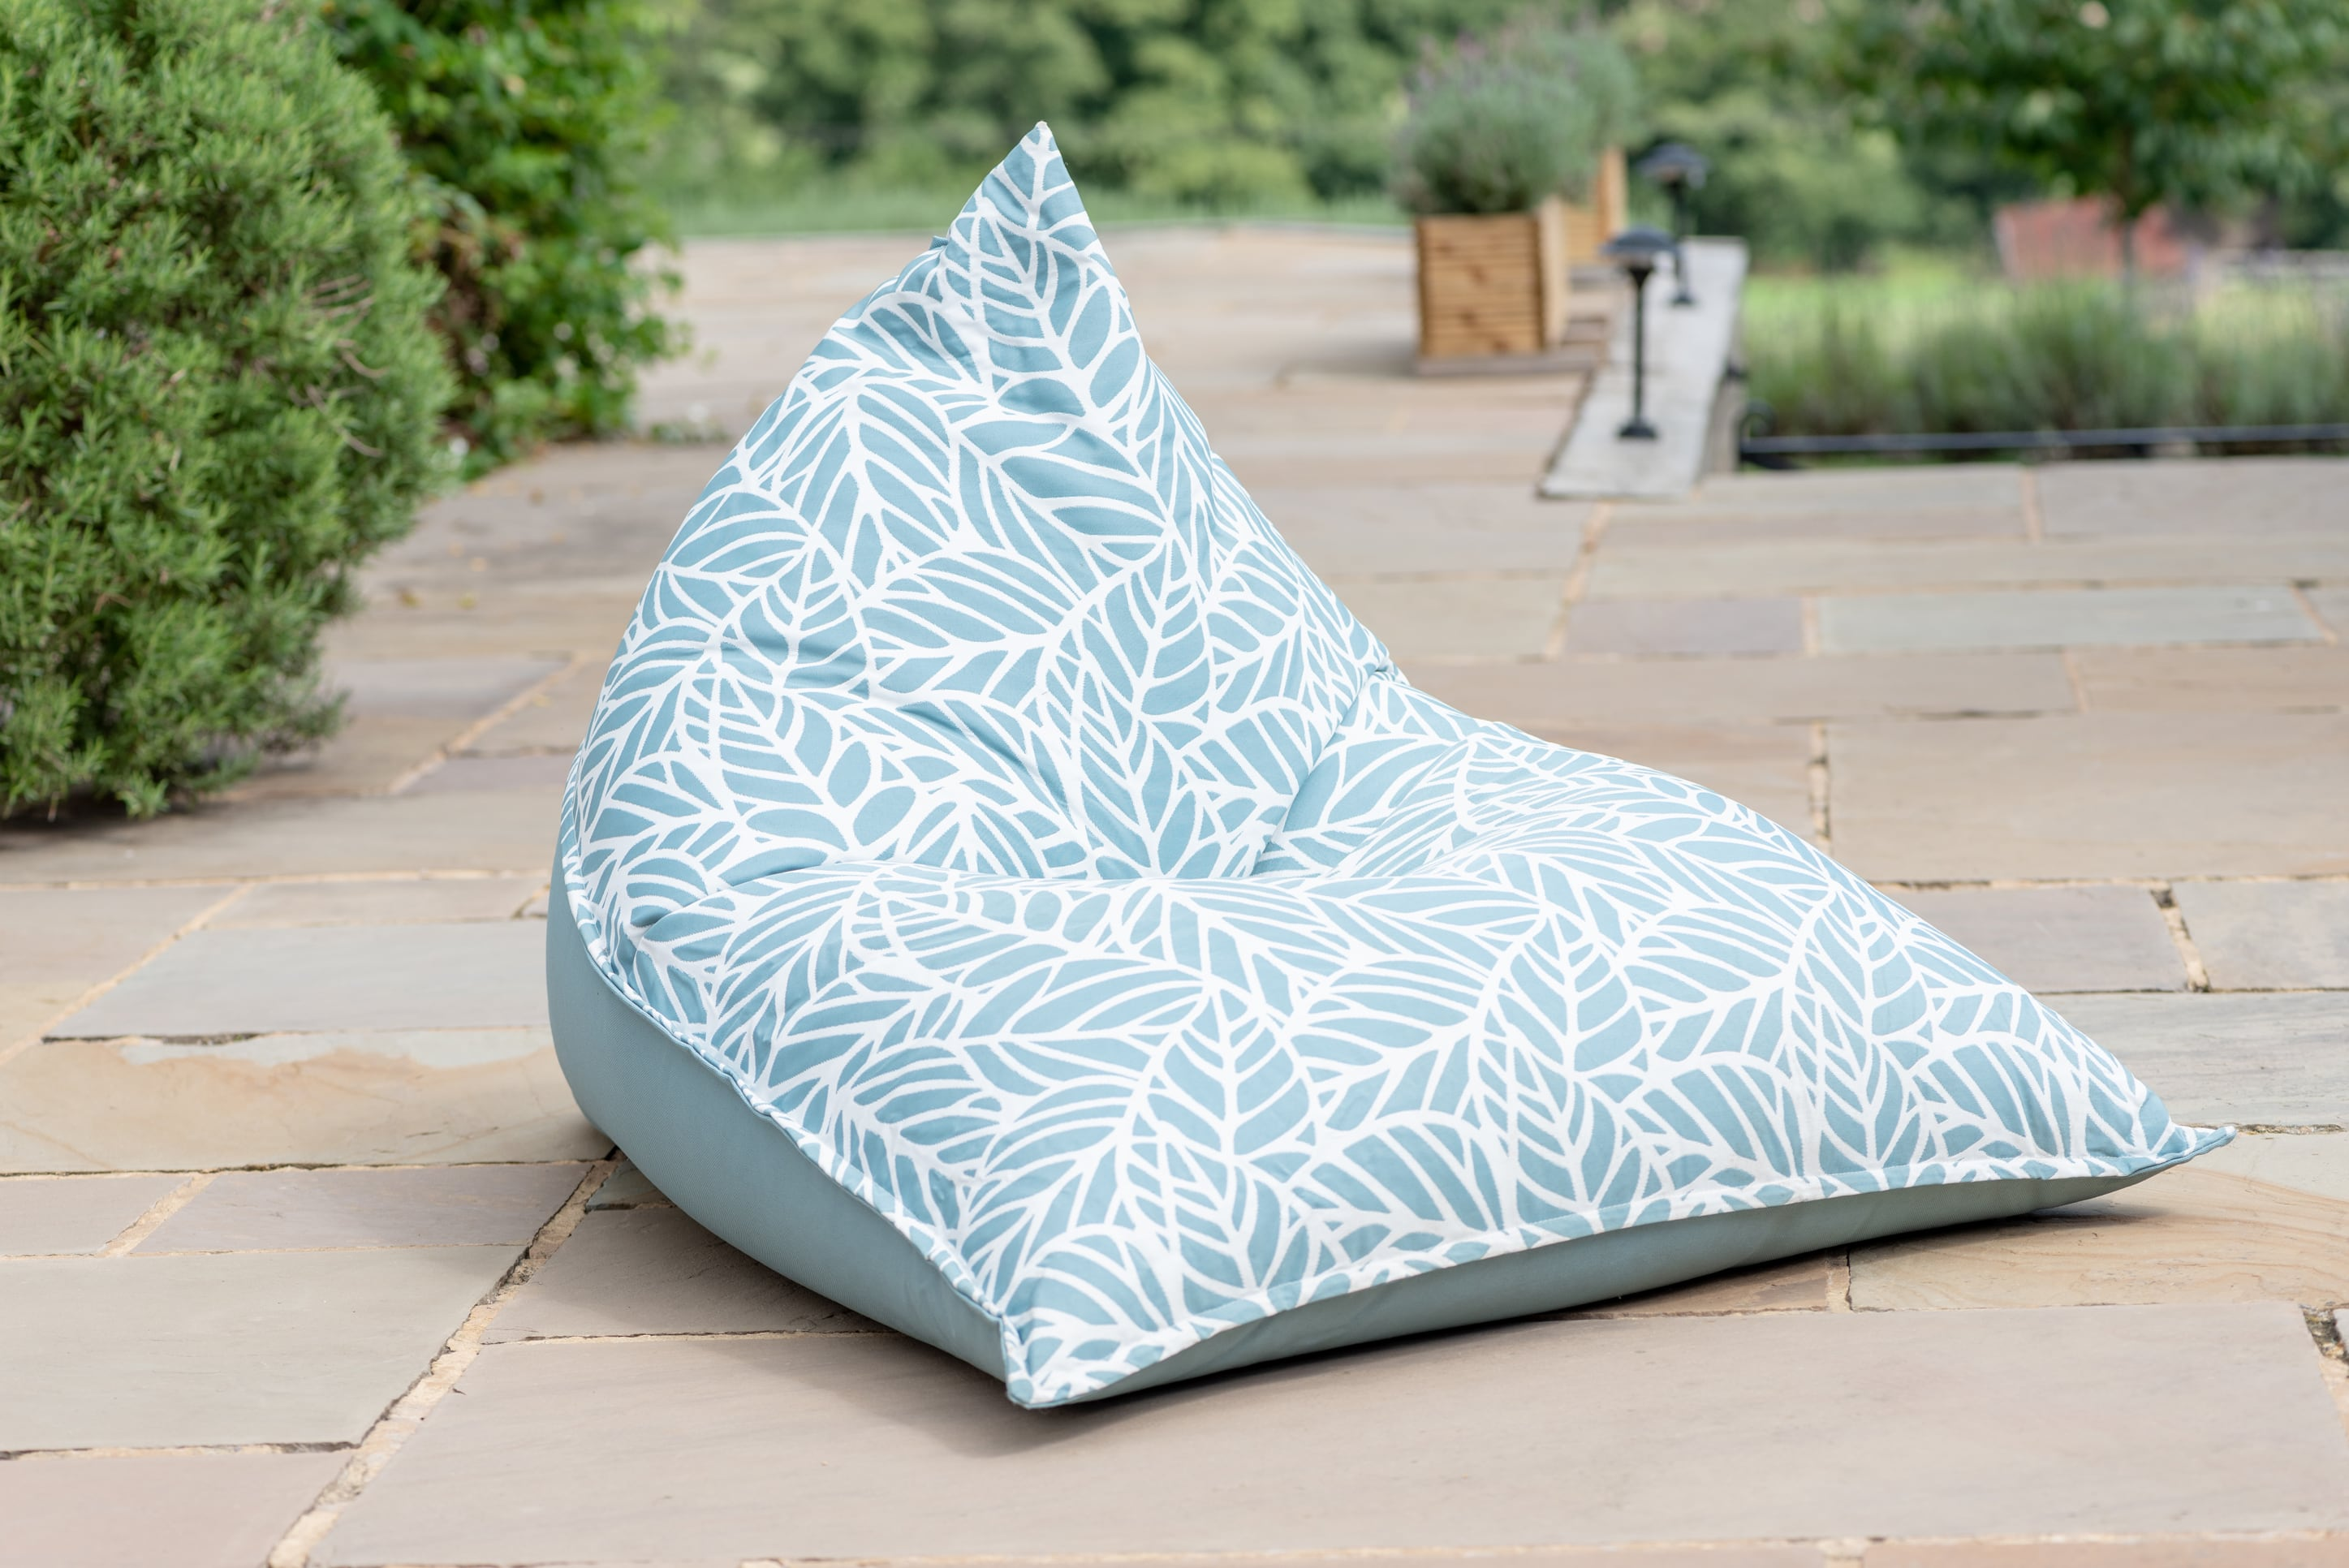 Armadillo Sun Bean Bag Chair in light blue and white pattern